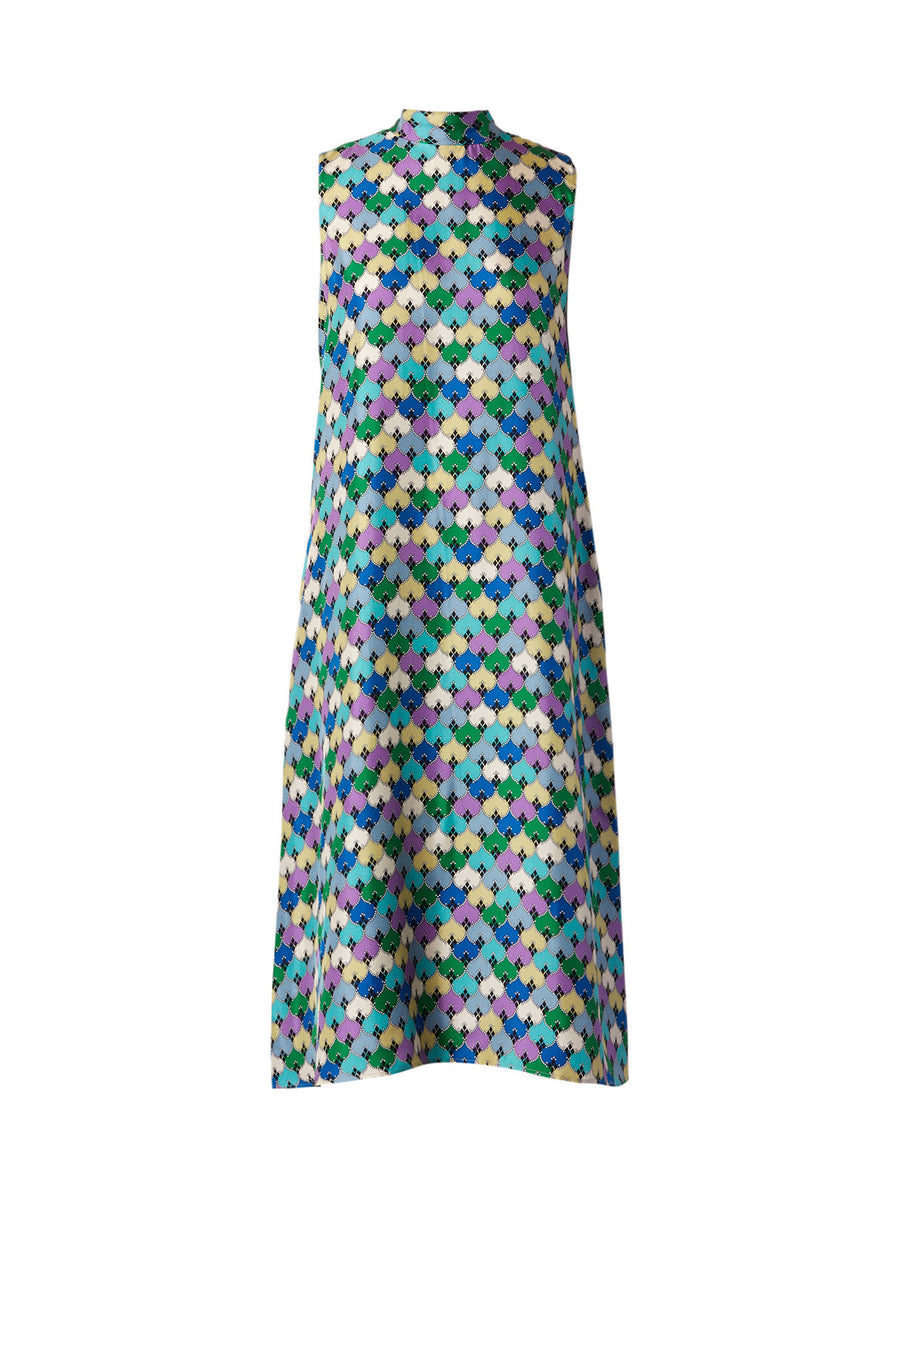 Designed in striking prints and vibrant tones, the garment is cut from a soft silk in a flattering 60's inspired shift silhouette.